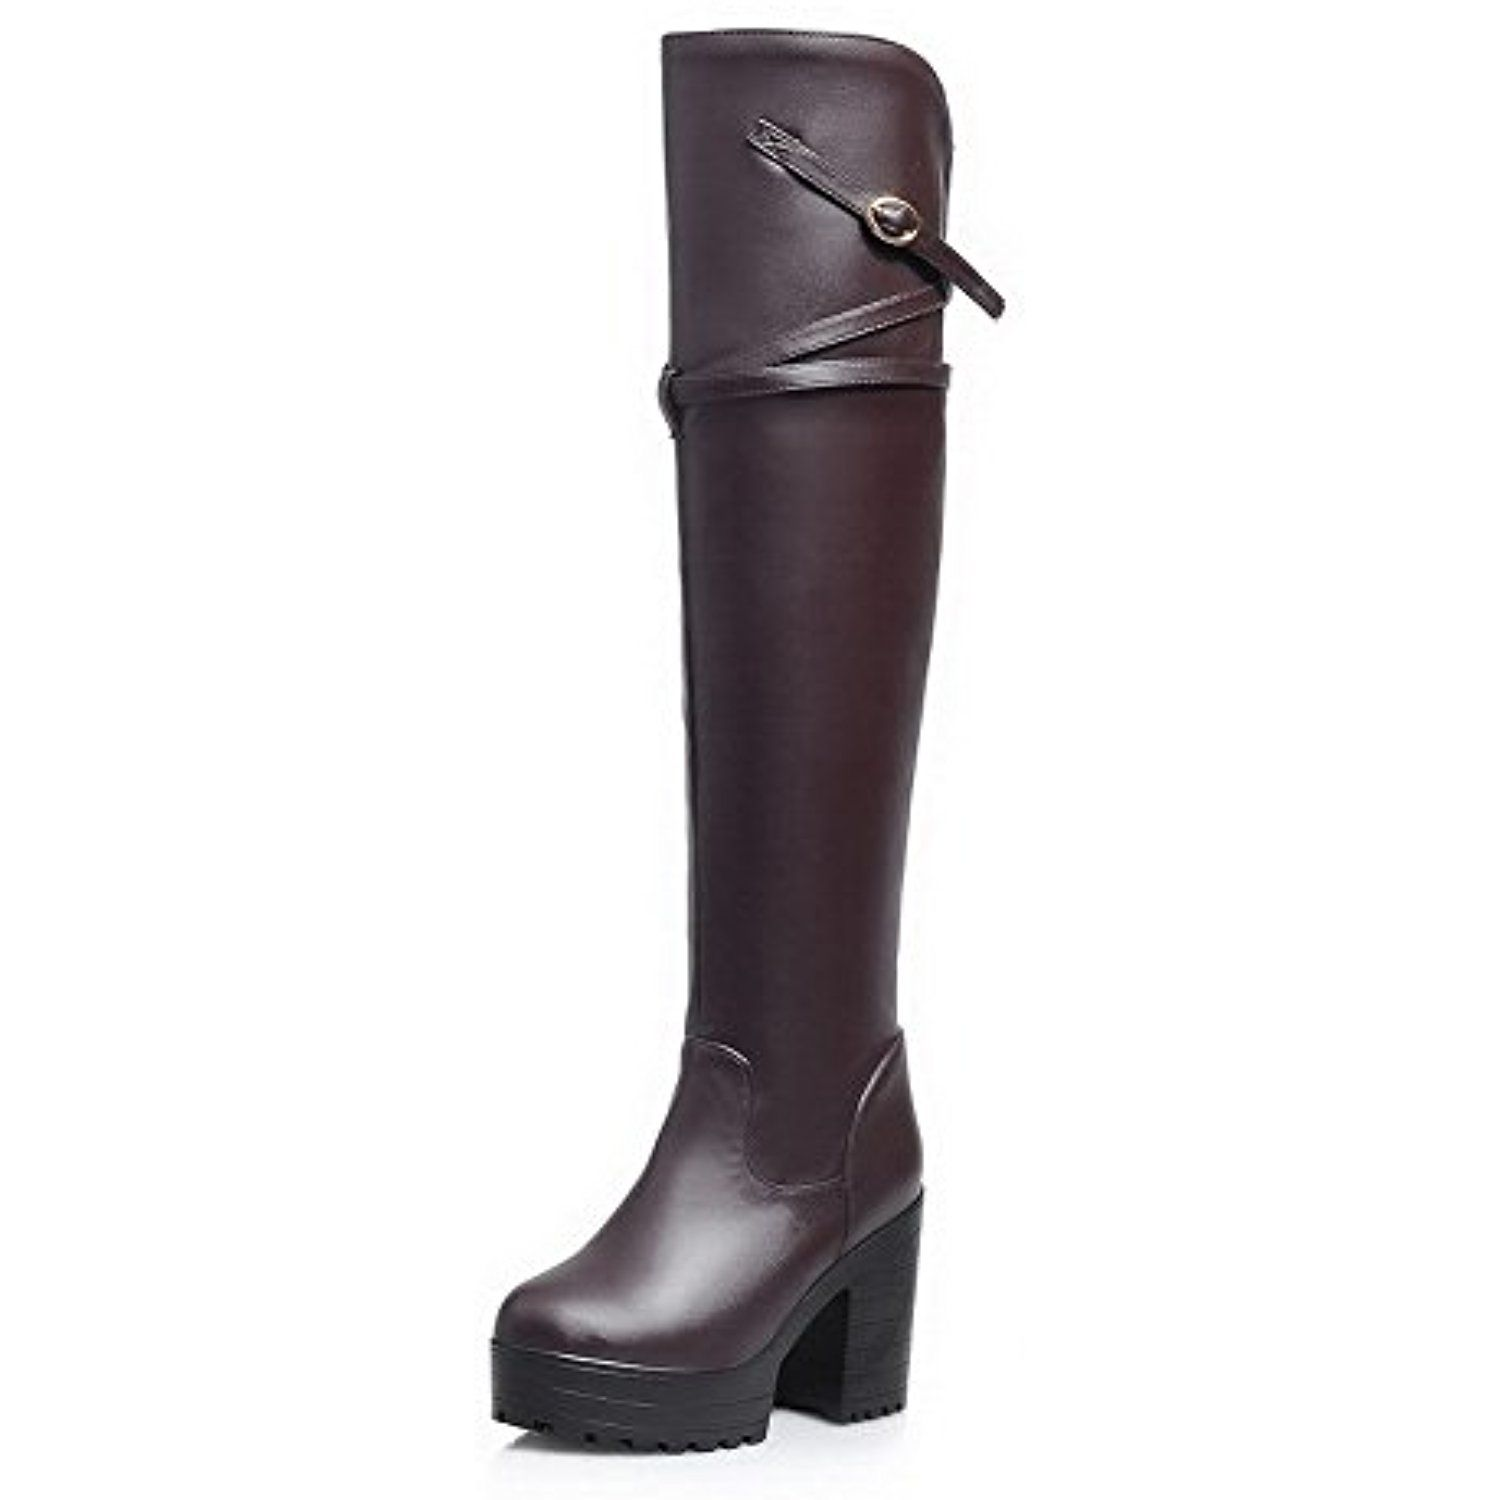 Women's Round Closed Toe PU Pull-on Above-the-knee High-heels Boots